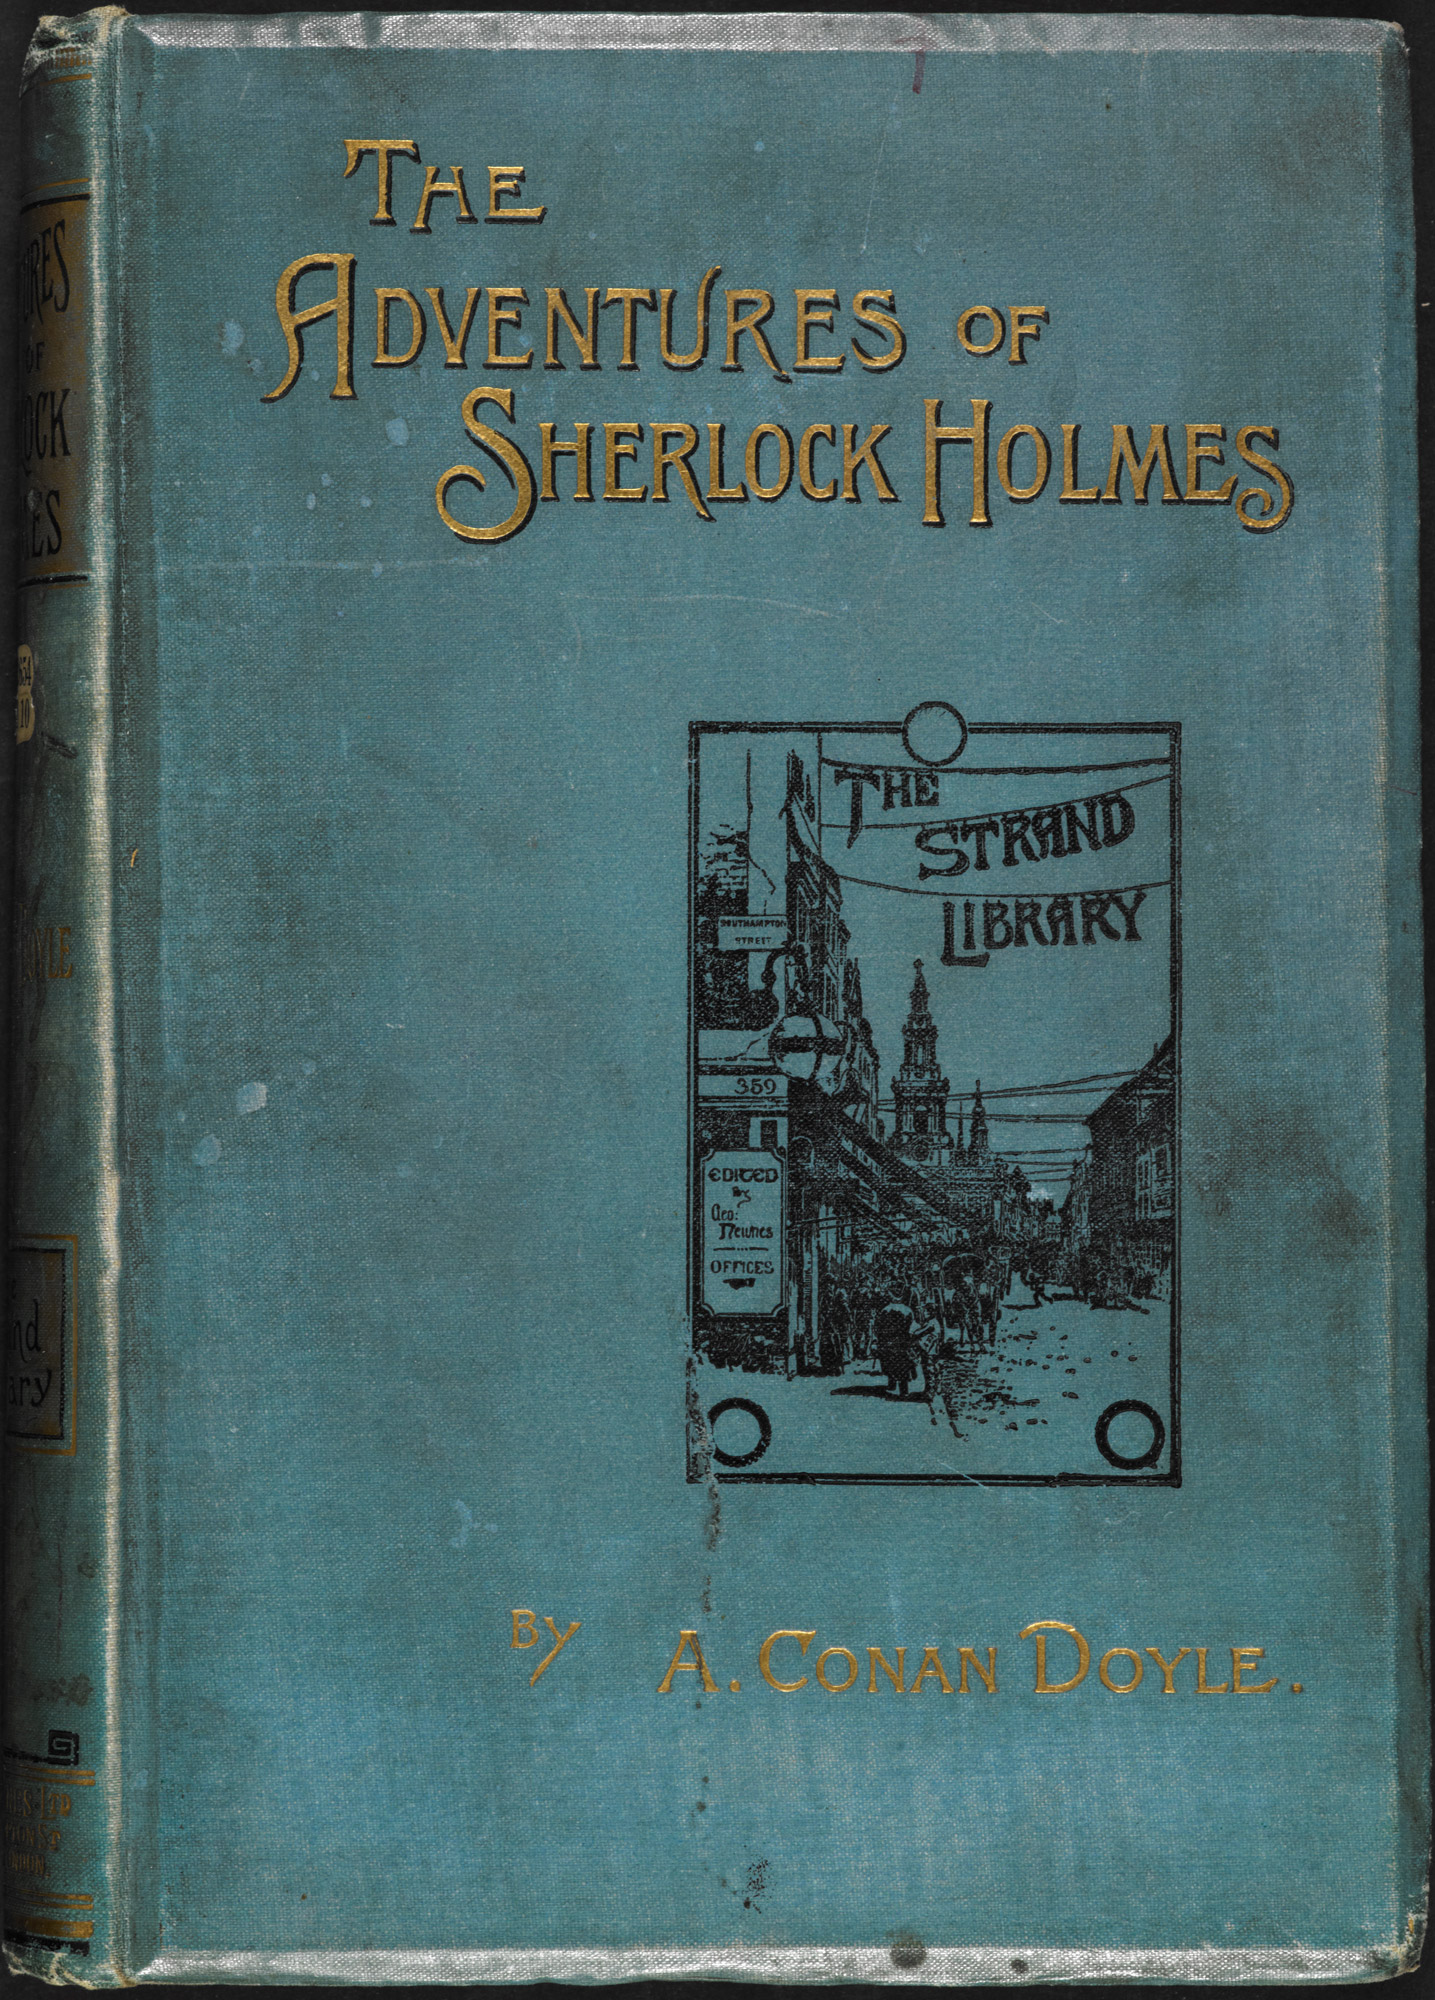 Illustrated front cover for the Adventures of Sherlock Holmes